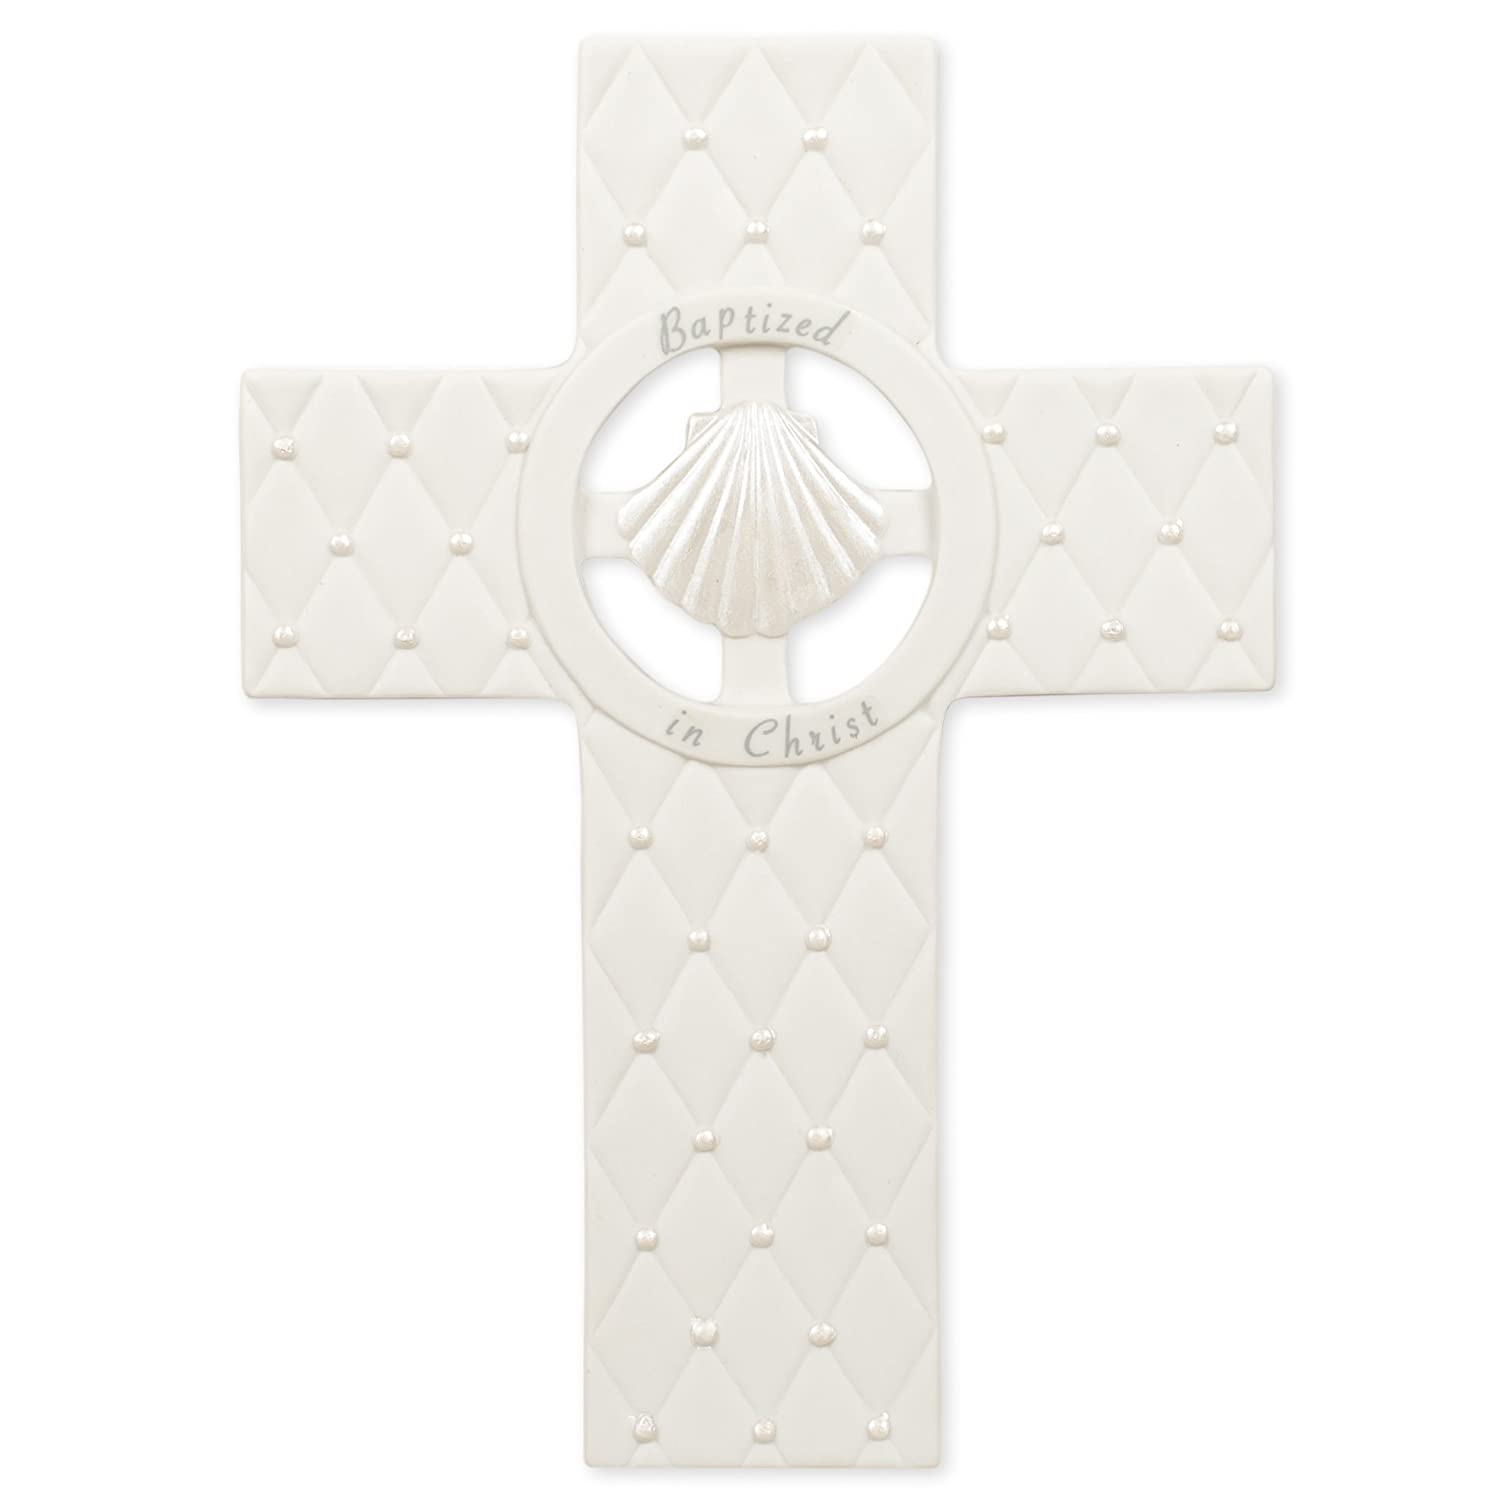 Roman Sea Shell Baptized in Christ 7.5 Inch Porcelain White Wall Cross Plaque